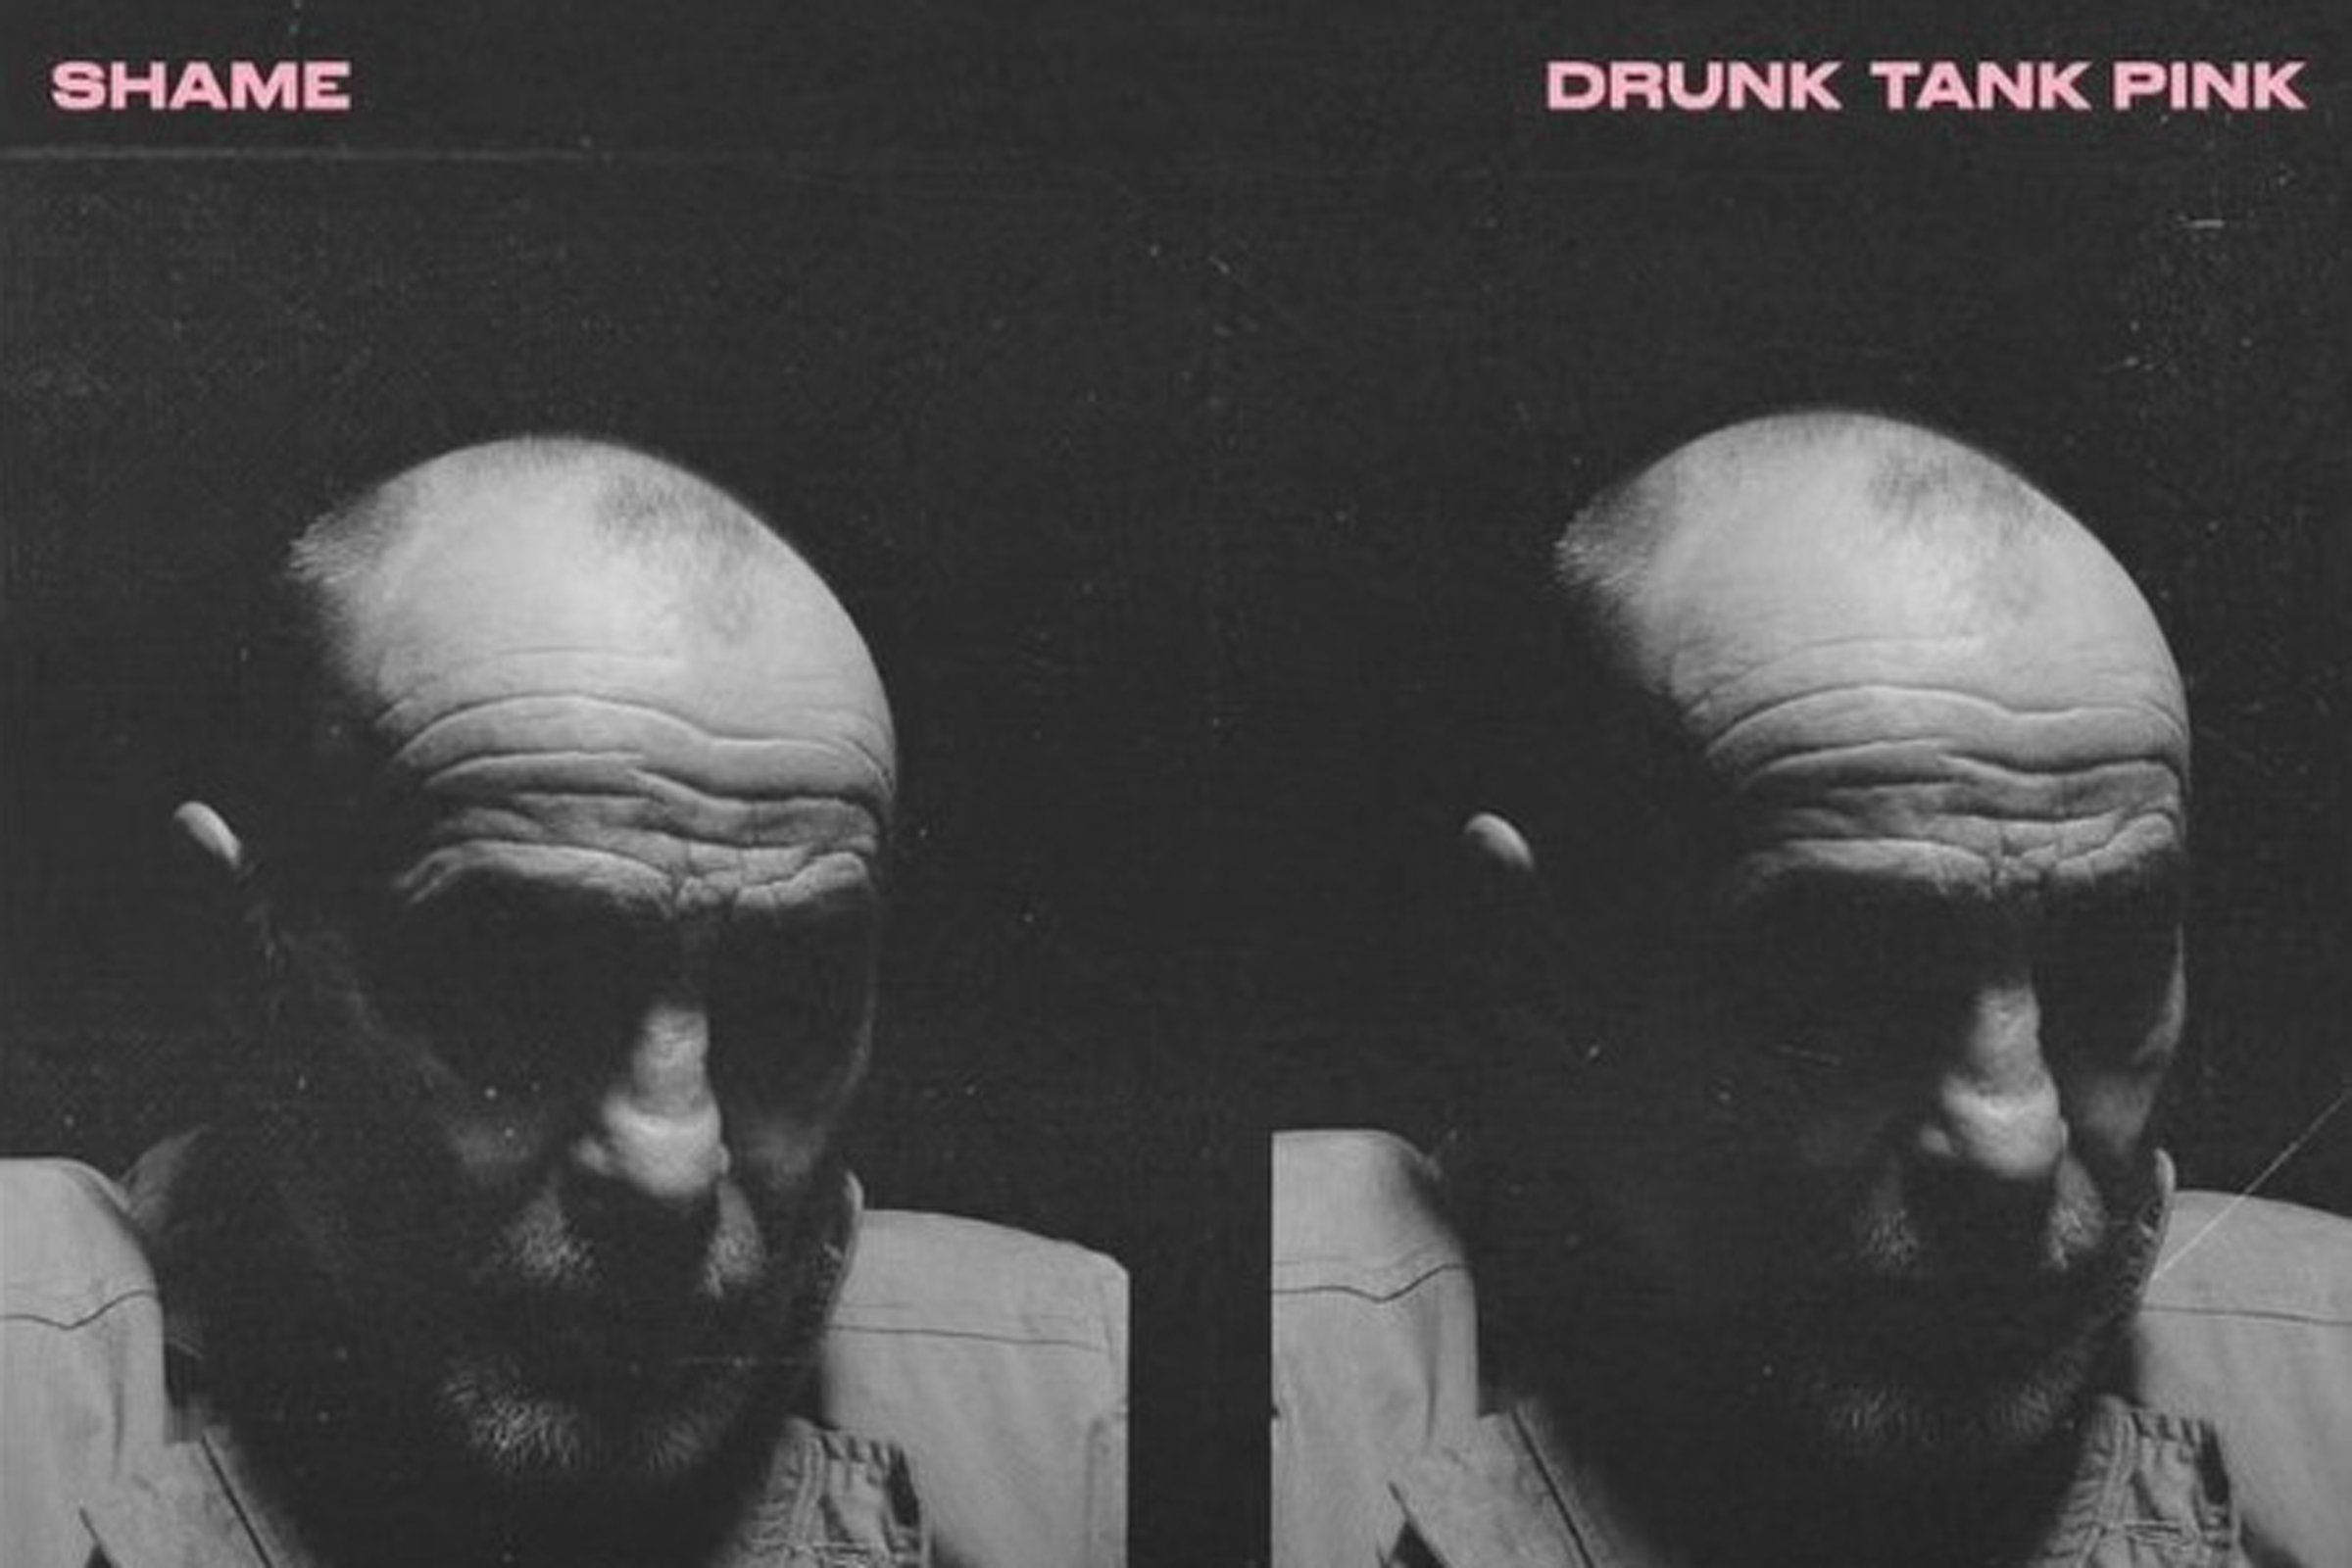 Shame's 'Drunk Tank Pink' love letter to post-punk achieves more than it intended